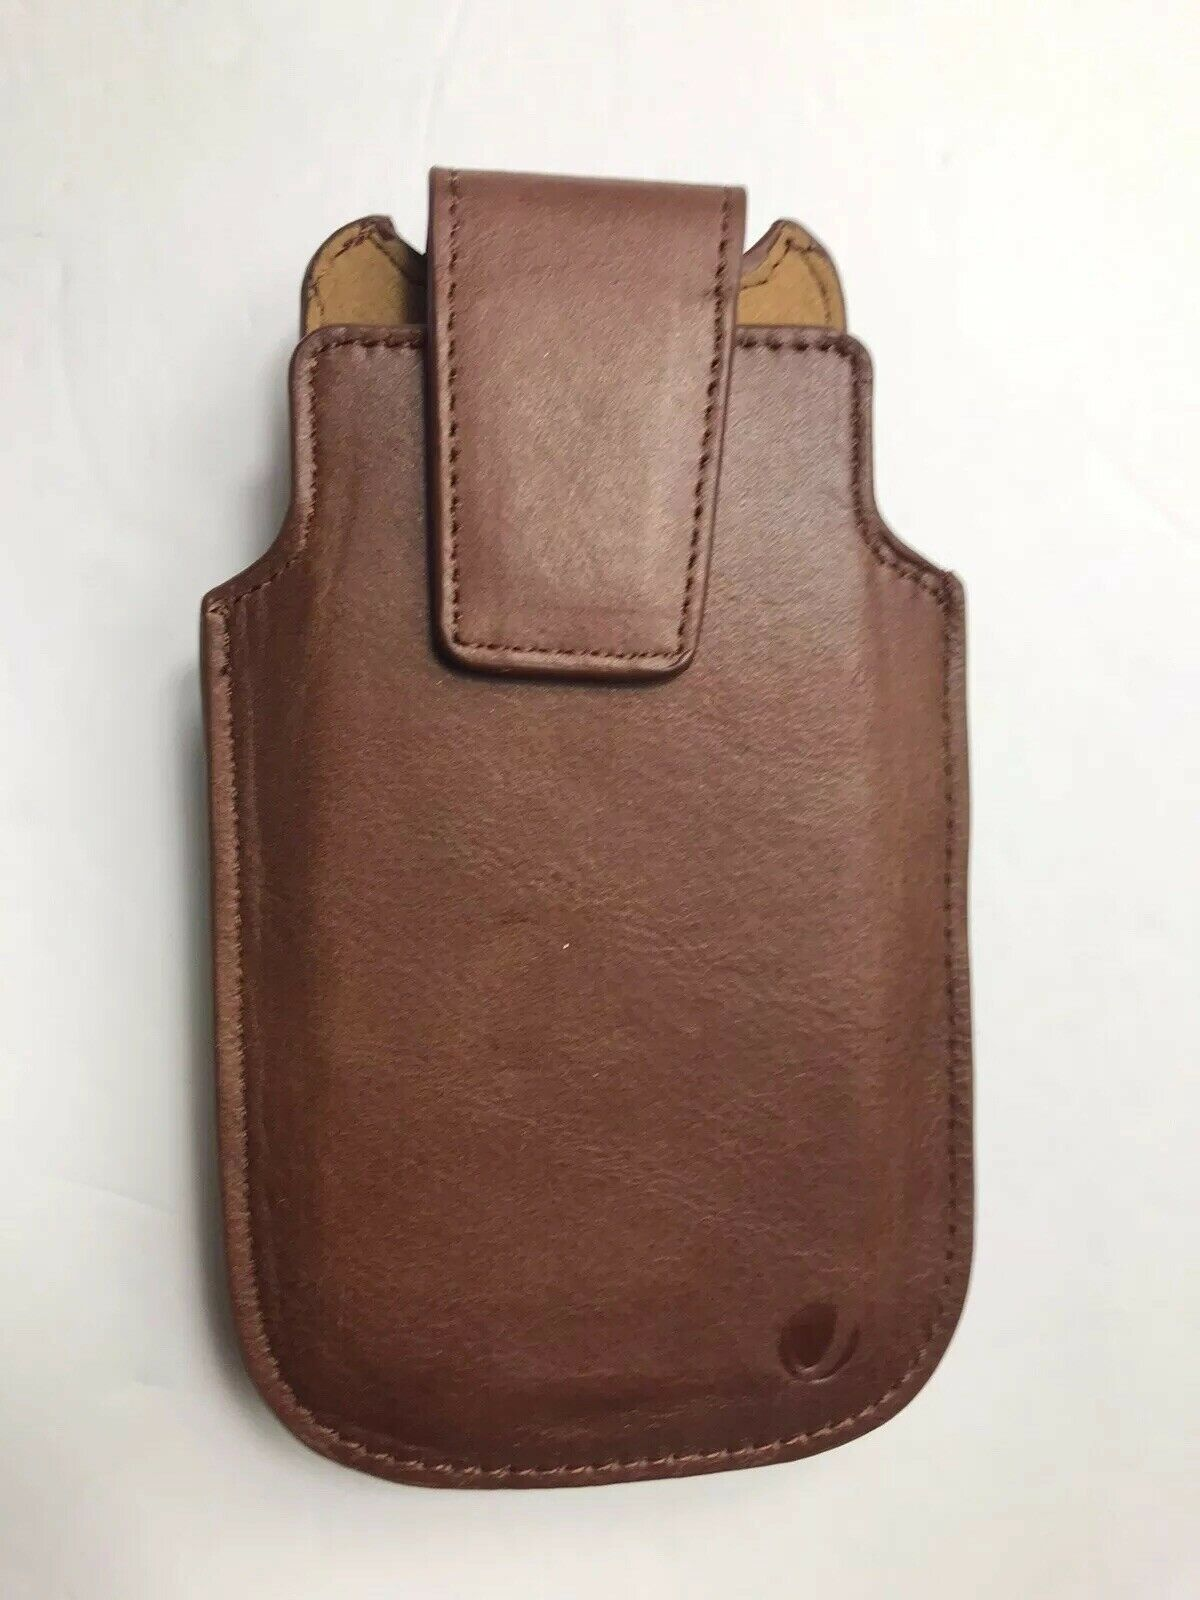 Vetta Brown Leather Phone Case